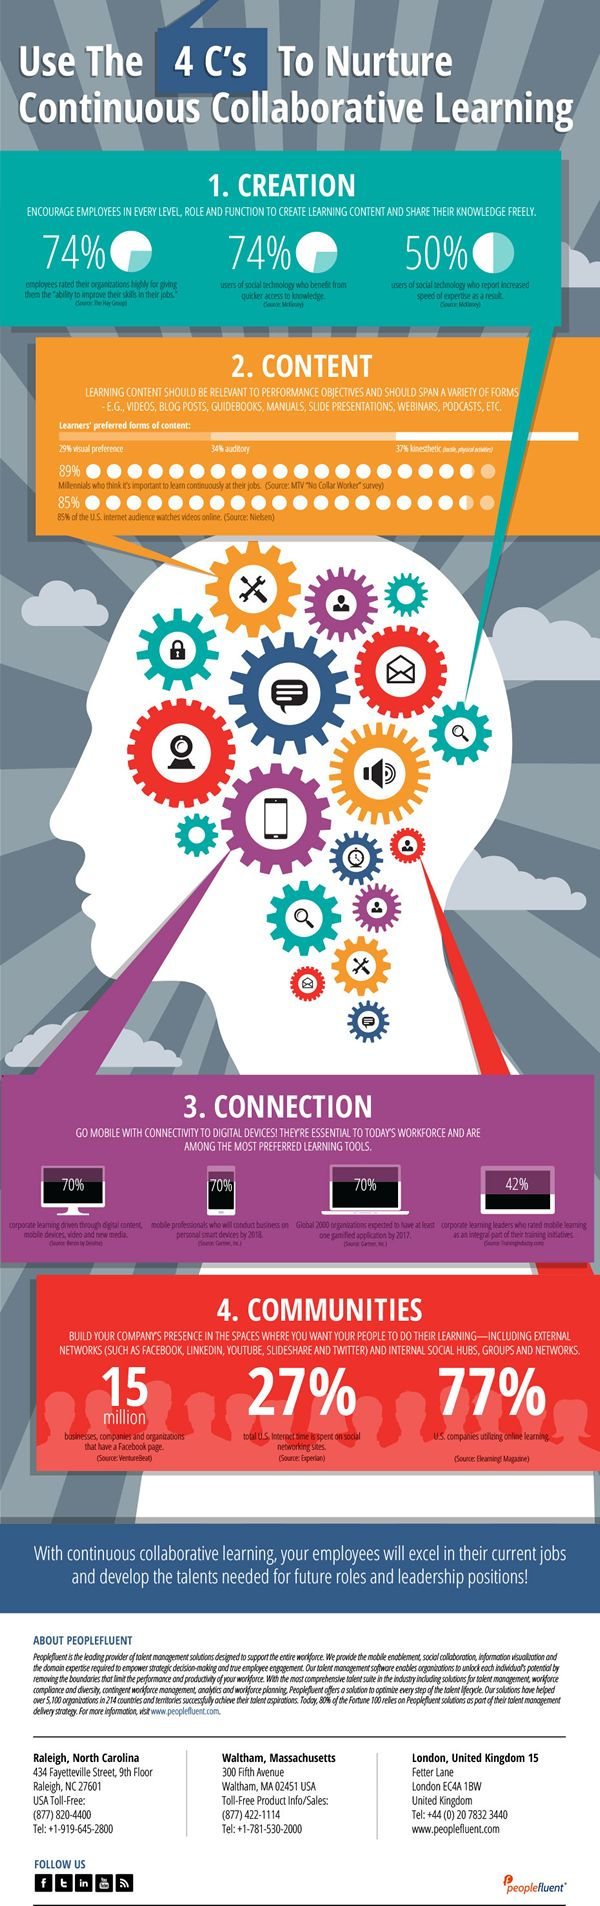 E learning poster designs - E Learning Poster Designs 58